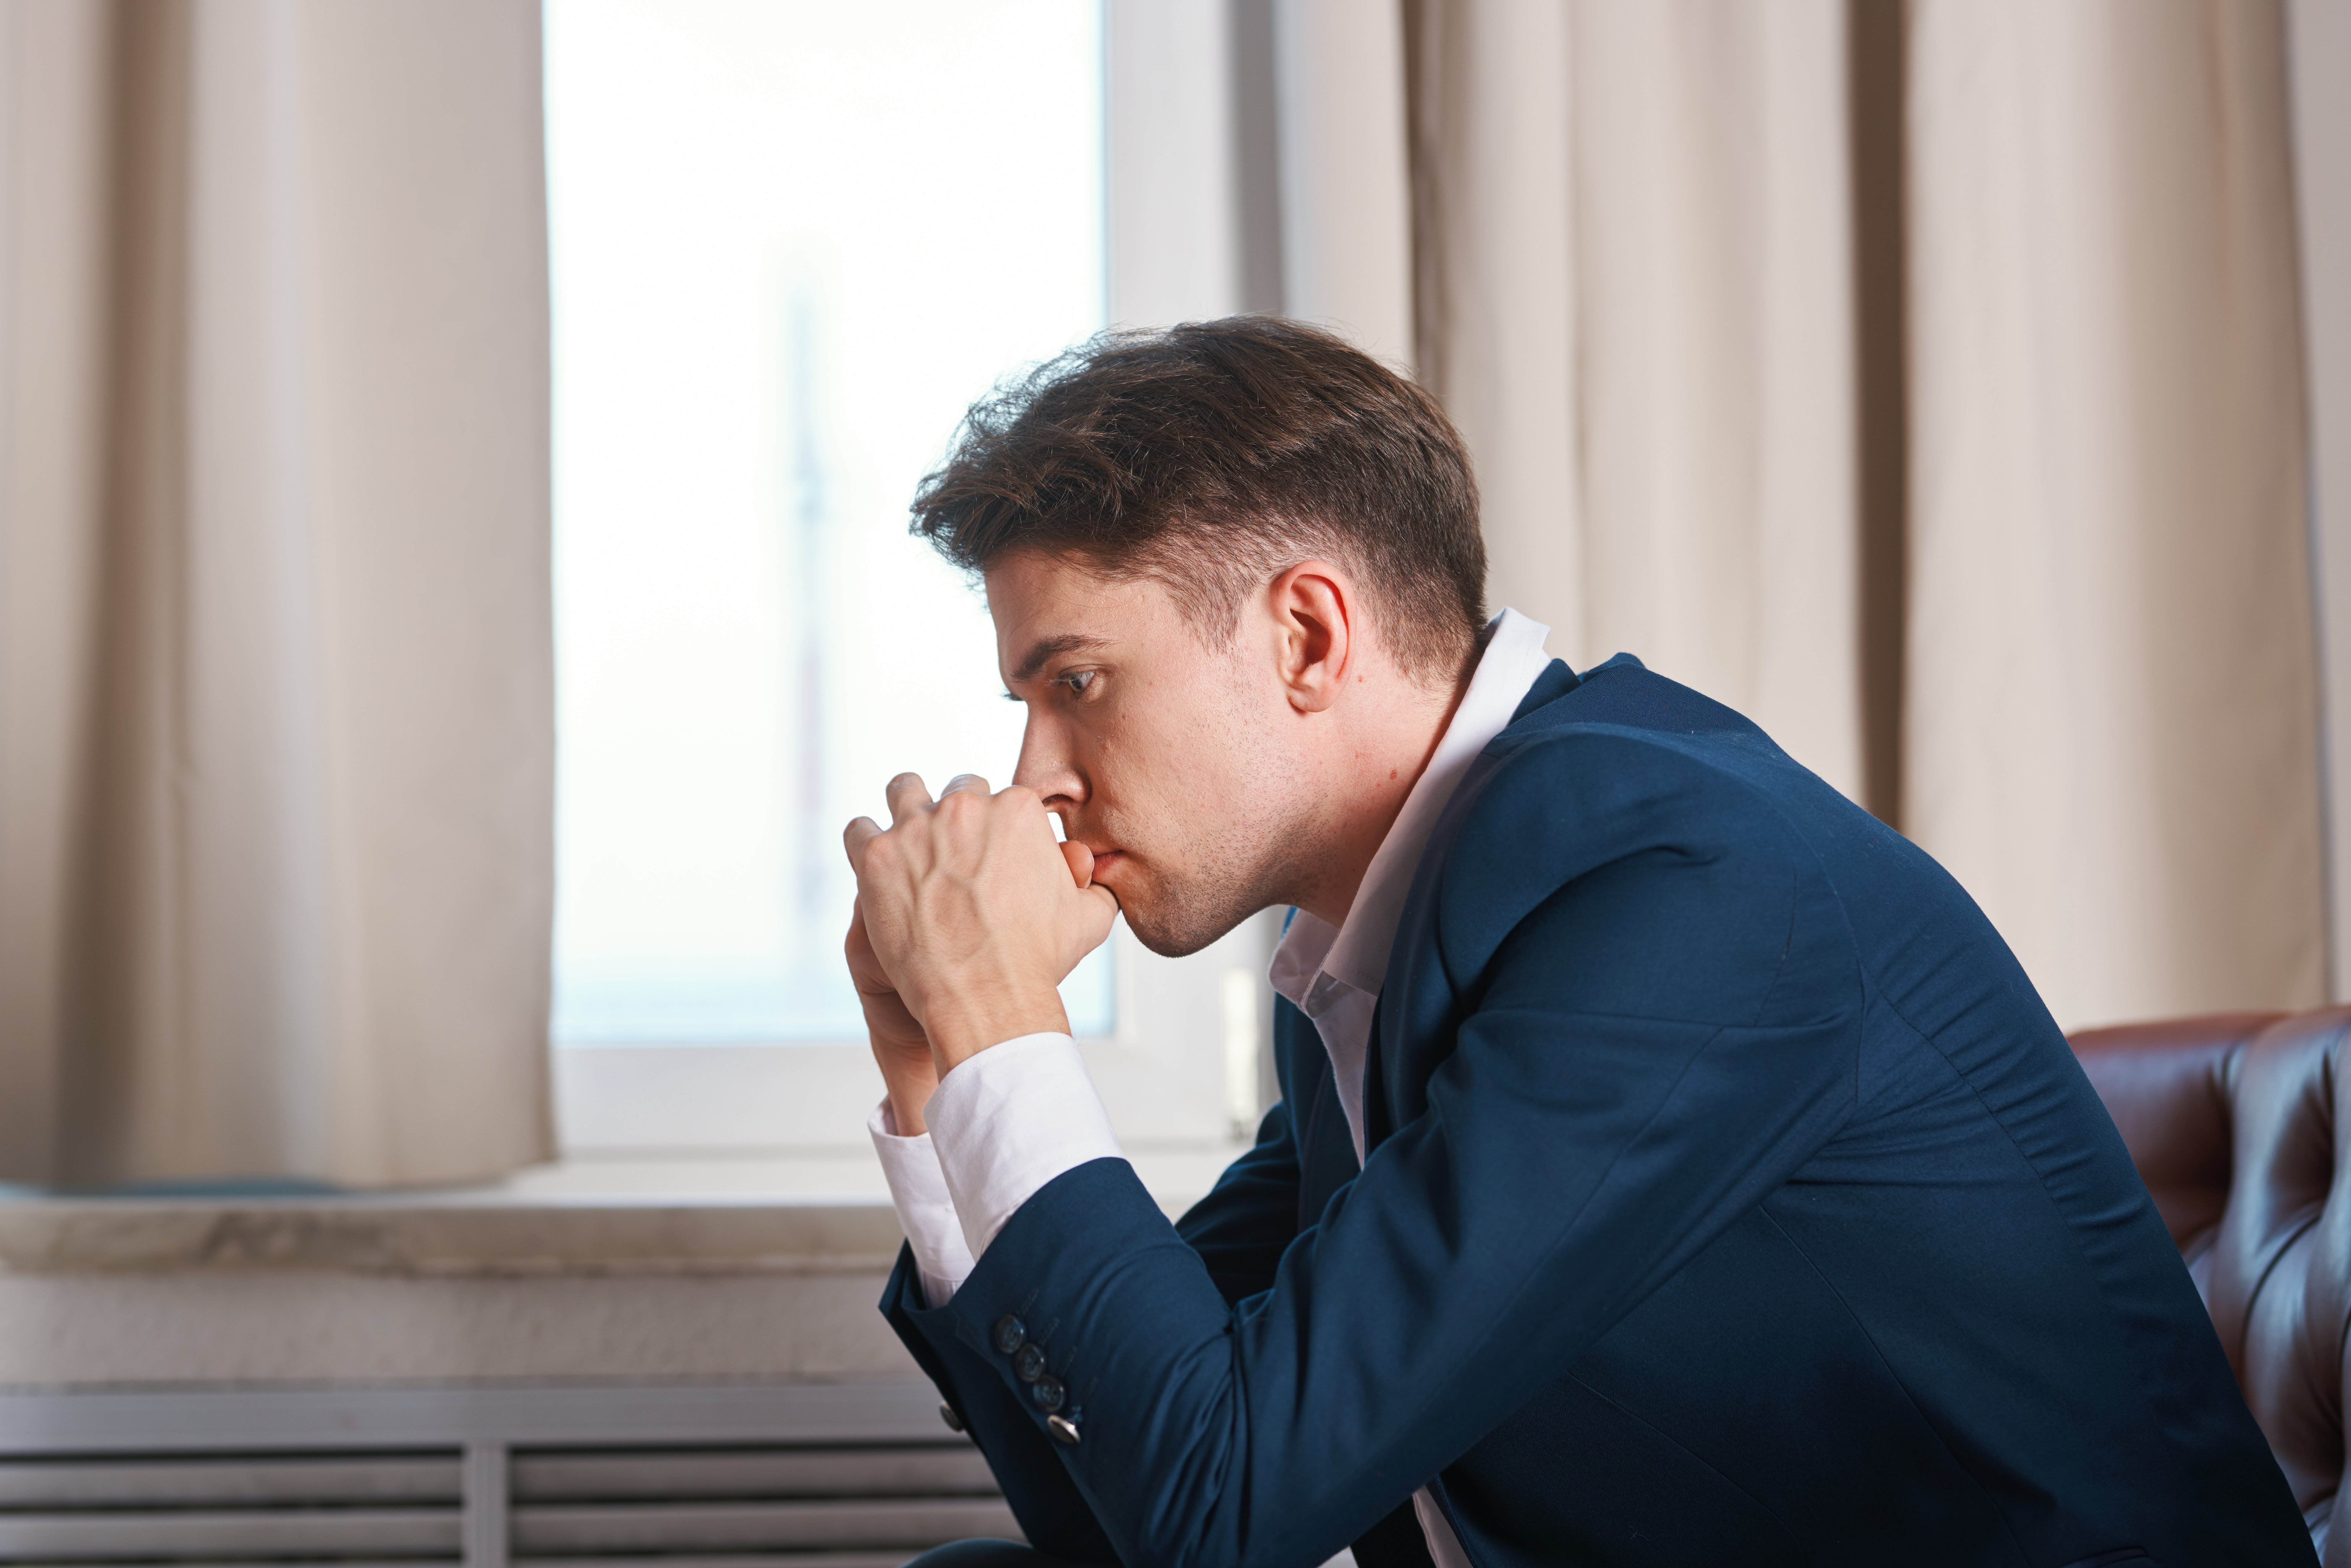 A business man holds his hands near the face with a pensive look of depression melancholy   Photo: Shutterstock.com